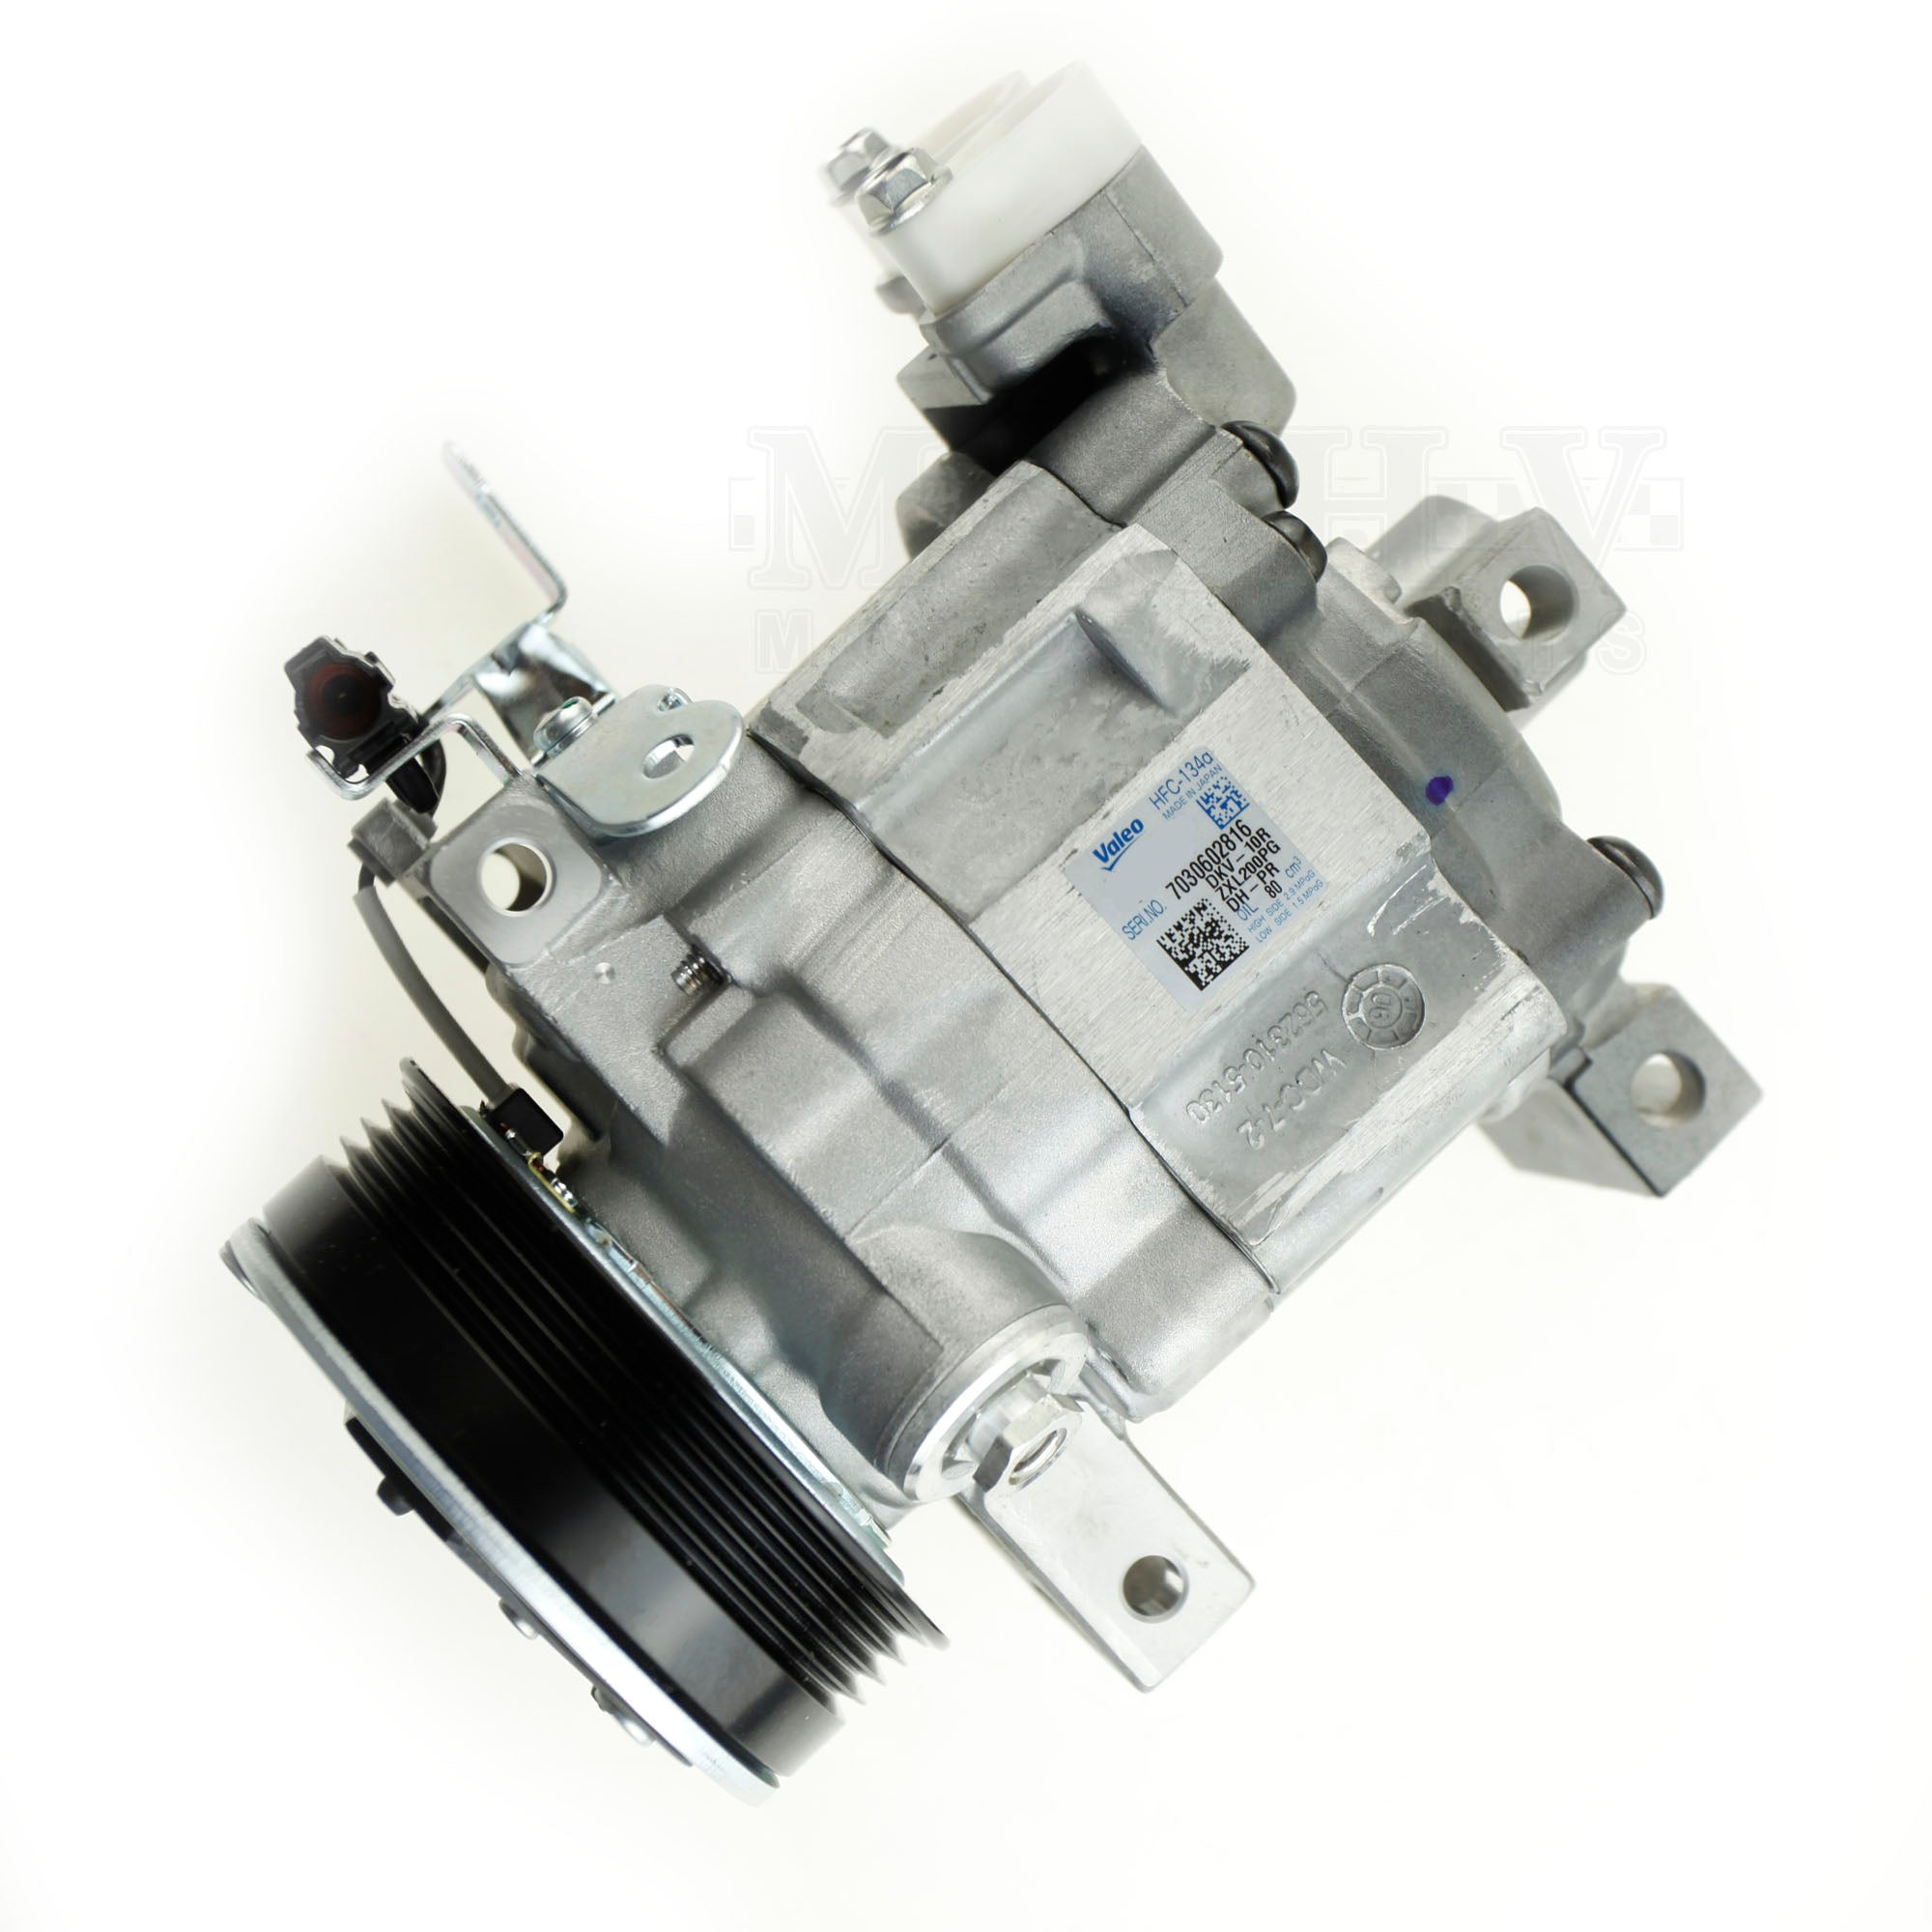 fits Chevy and Pontiac Passenger Side Front without Power Window Motor Premier Gear PG-740-887 Window Regulator